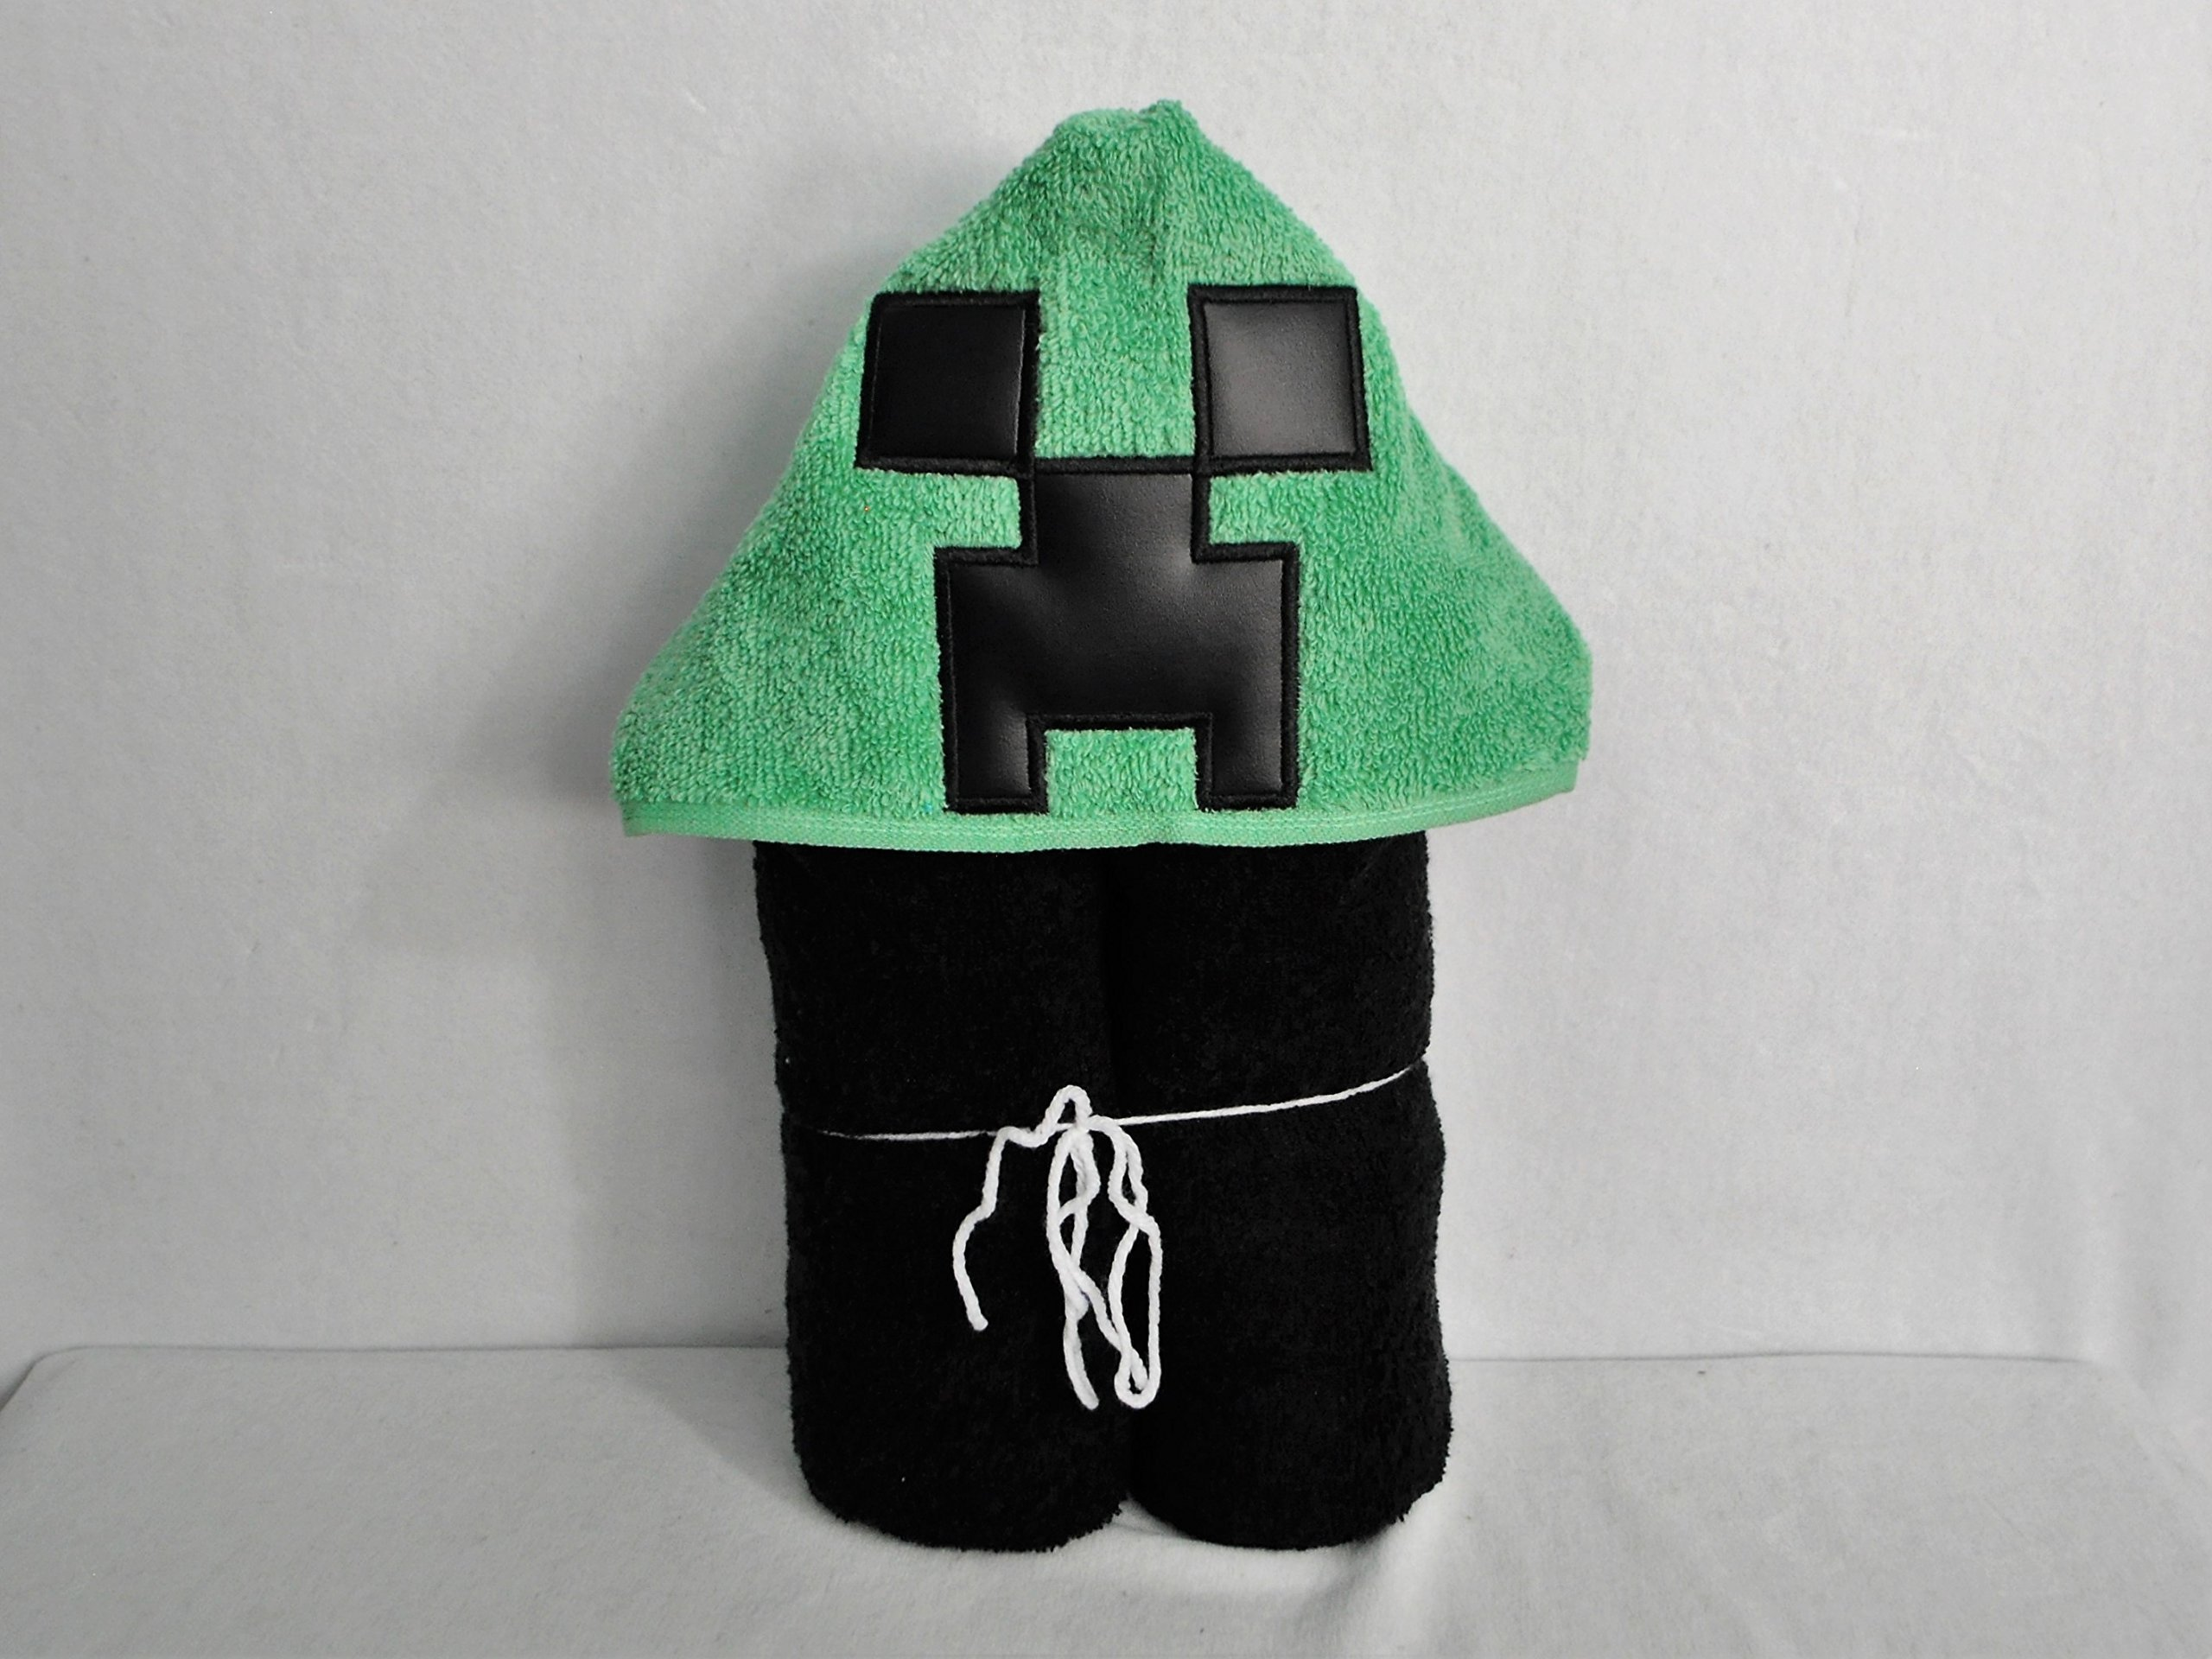 Green Creepy Game Guy Plumber Hooded Bath Towel - Baby, Child, Tween